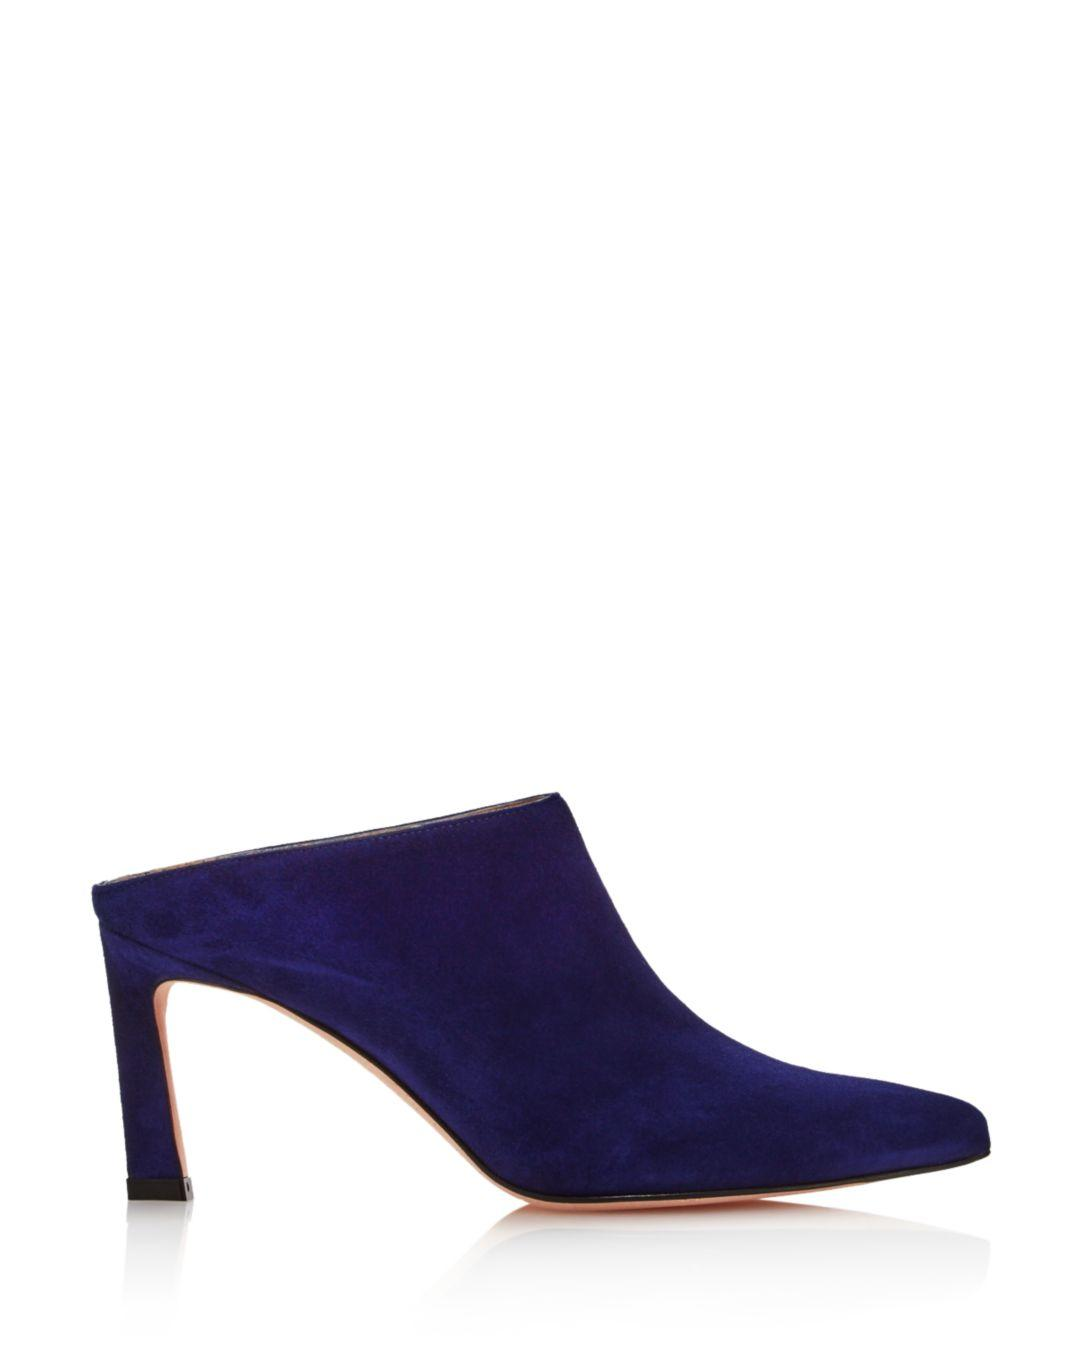 1de3842128a Stuart Weitzman Women s Mira Pointed Toe High-heel Mules in Blue - Save 1%  - Lyst